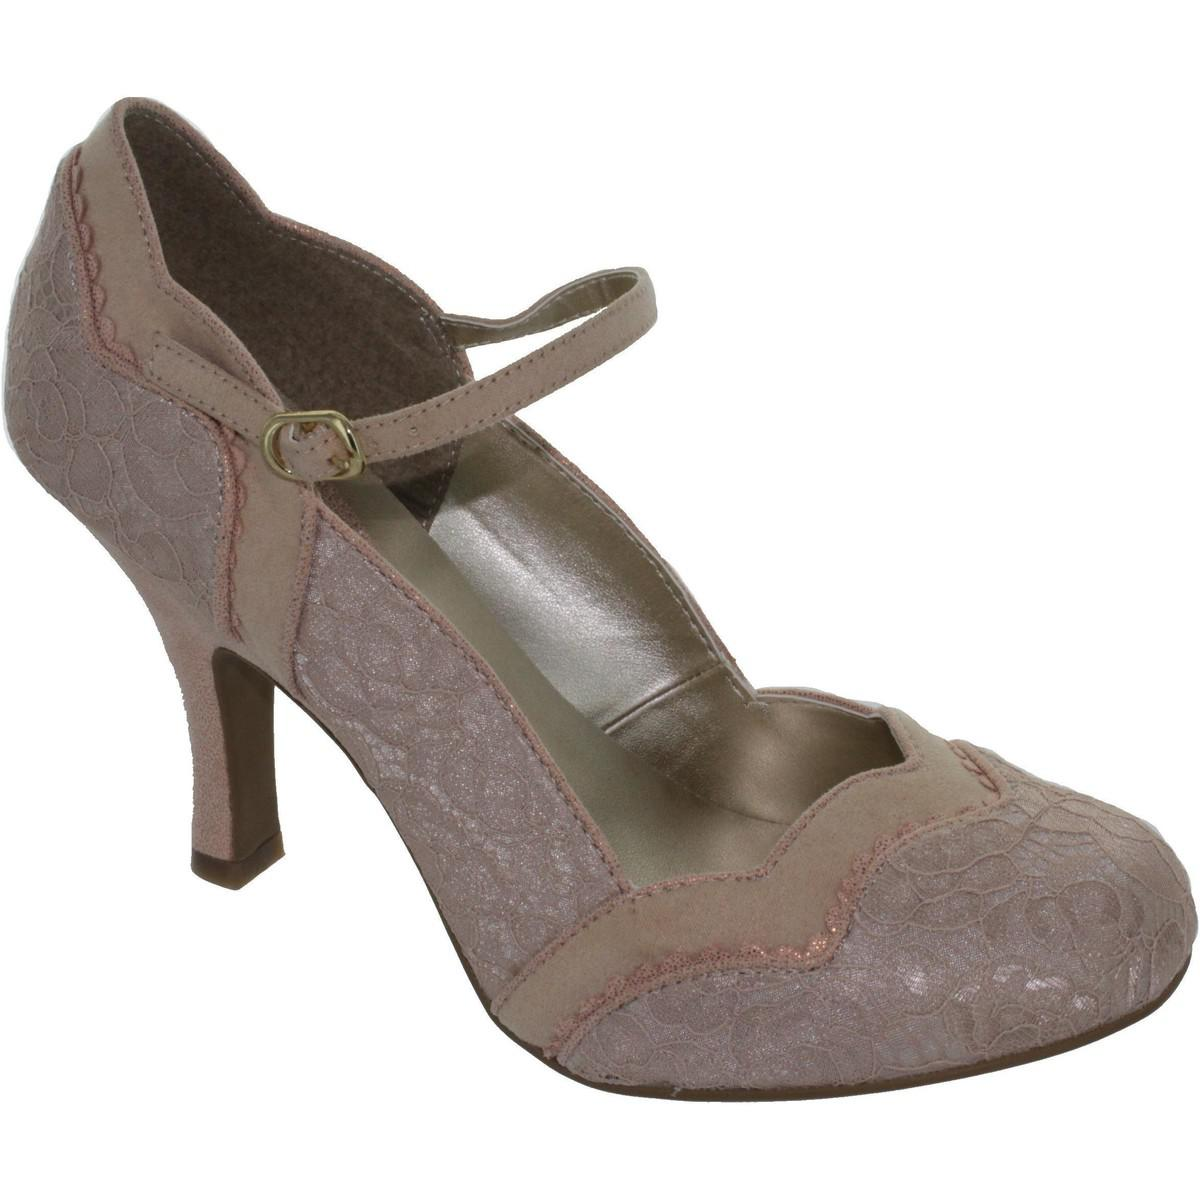 e13f19da42af Ruby Shoo Imogen Women s Court Shoes In Pink in Pink - Lyst